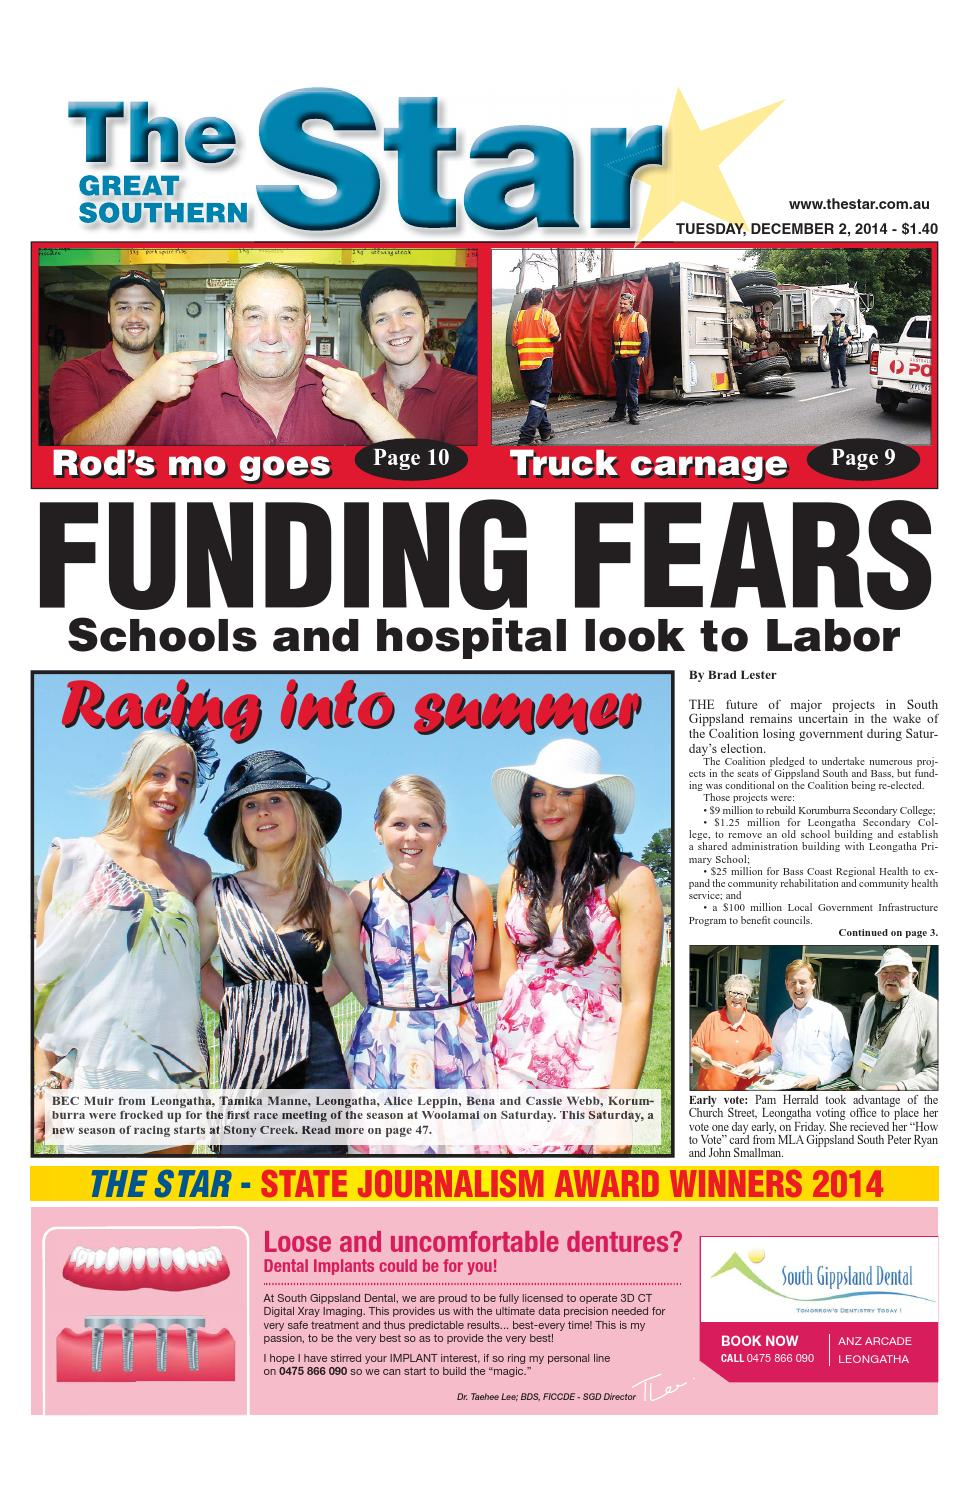 The Great Southern Star - December 2, 2014 by The Great